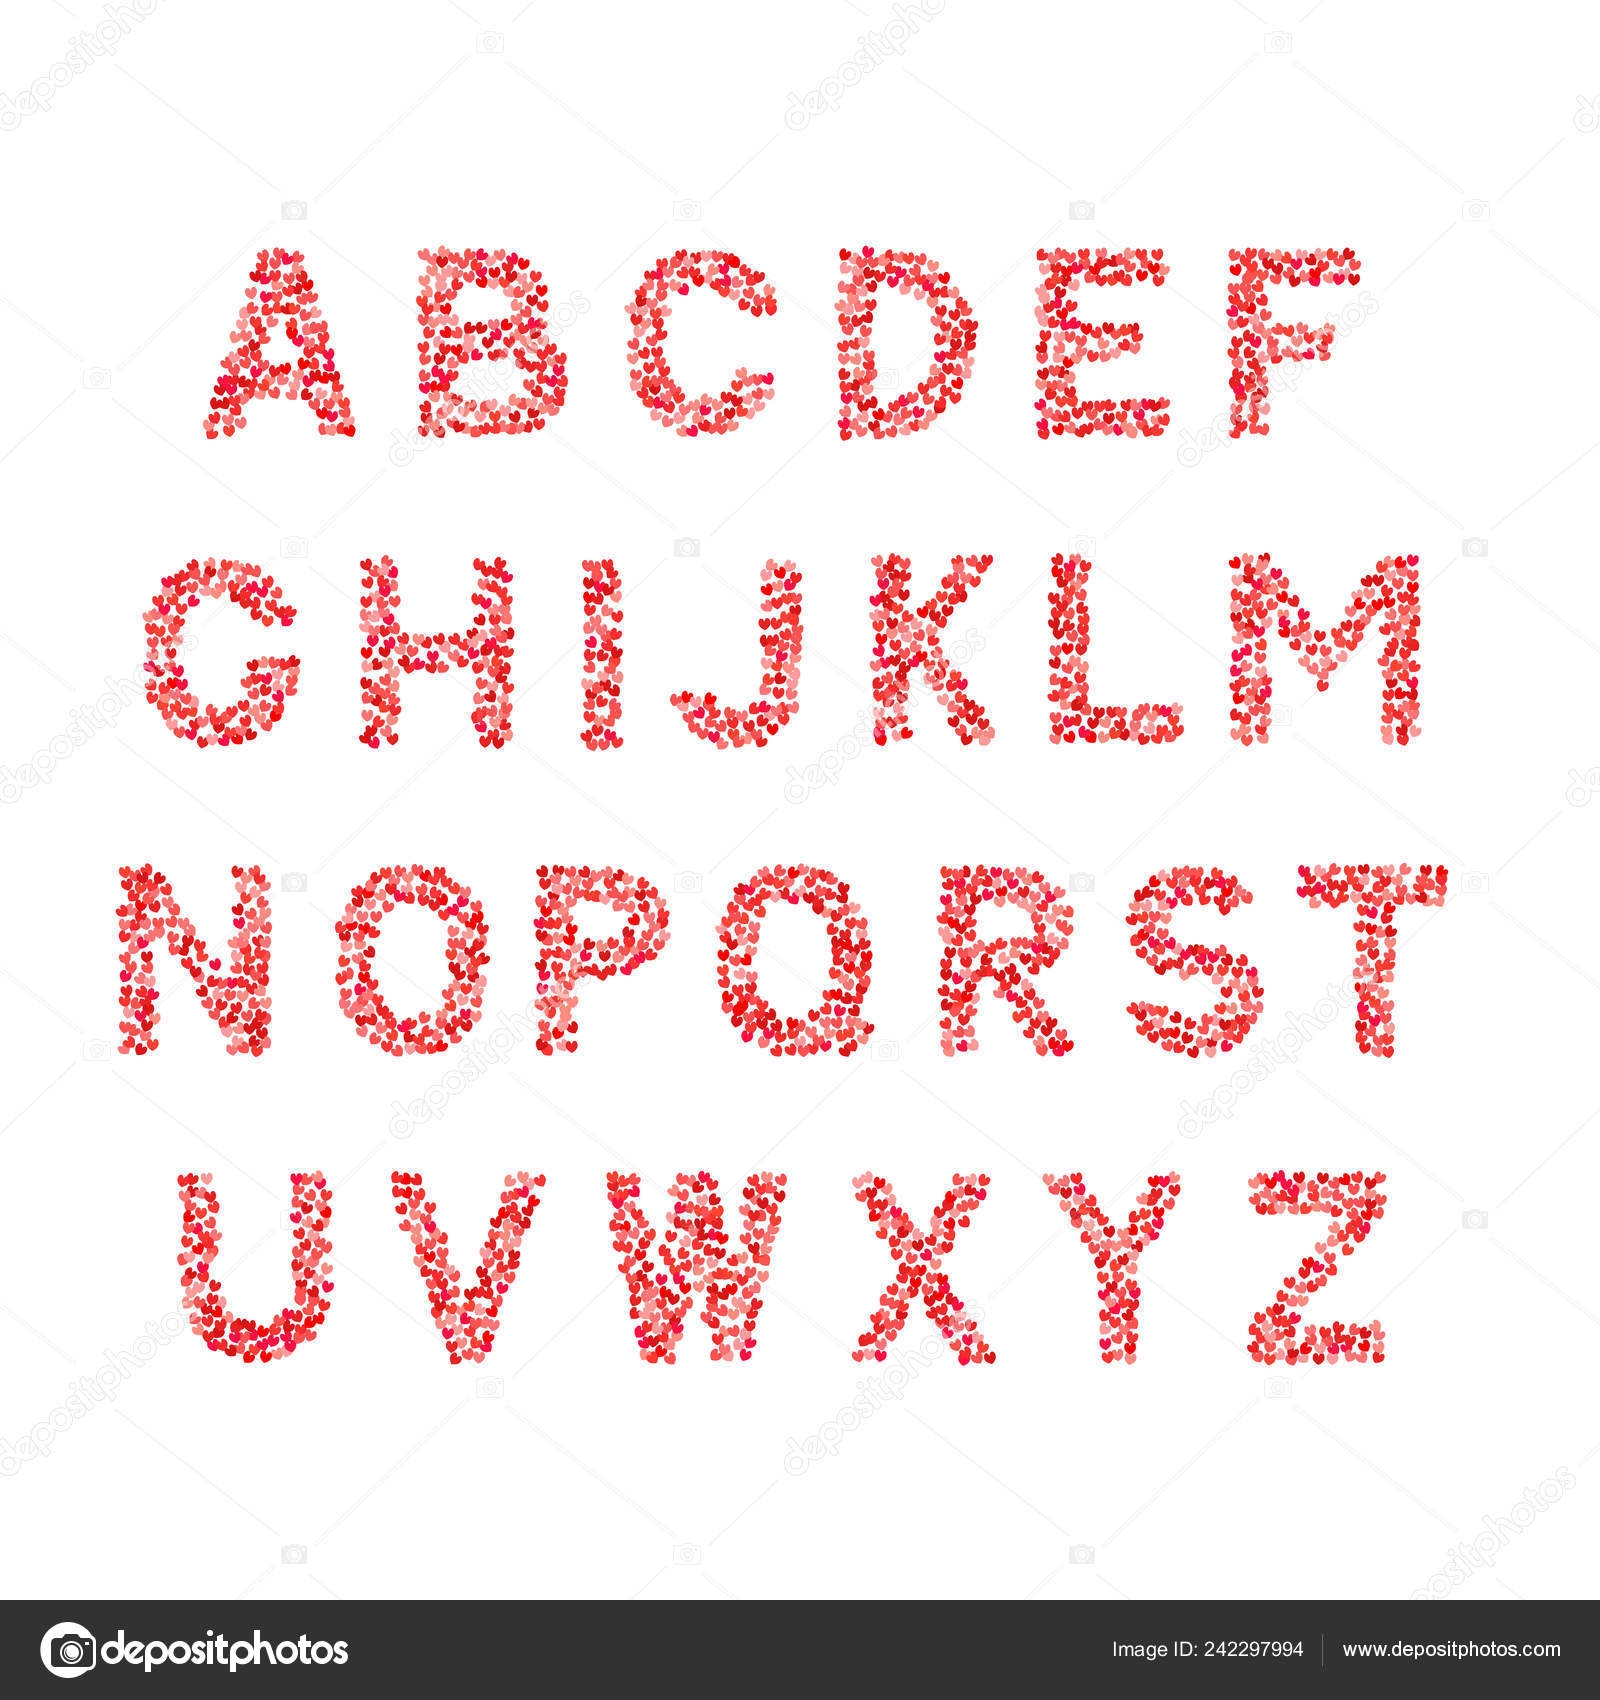 Vector Alphabet Letters Made Hearts Shades Red Pink Isolated White Vector Image By C Designergraphic84 Vector Stock 242297994